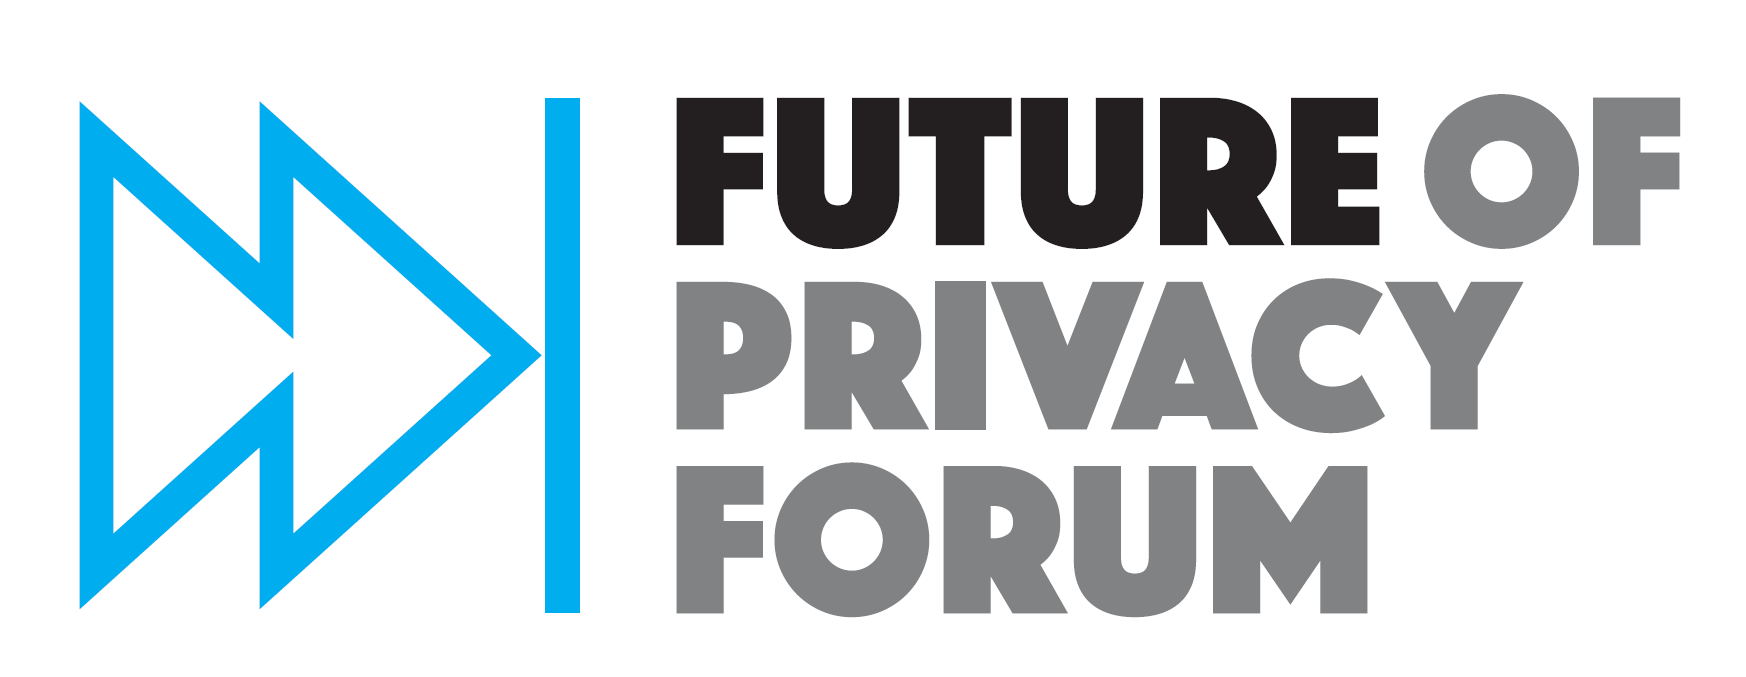 Future of Privacy Forum logo